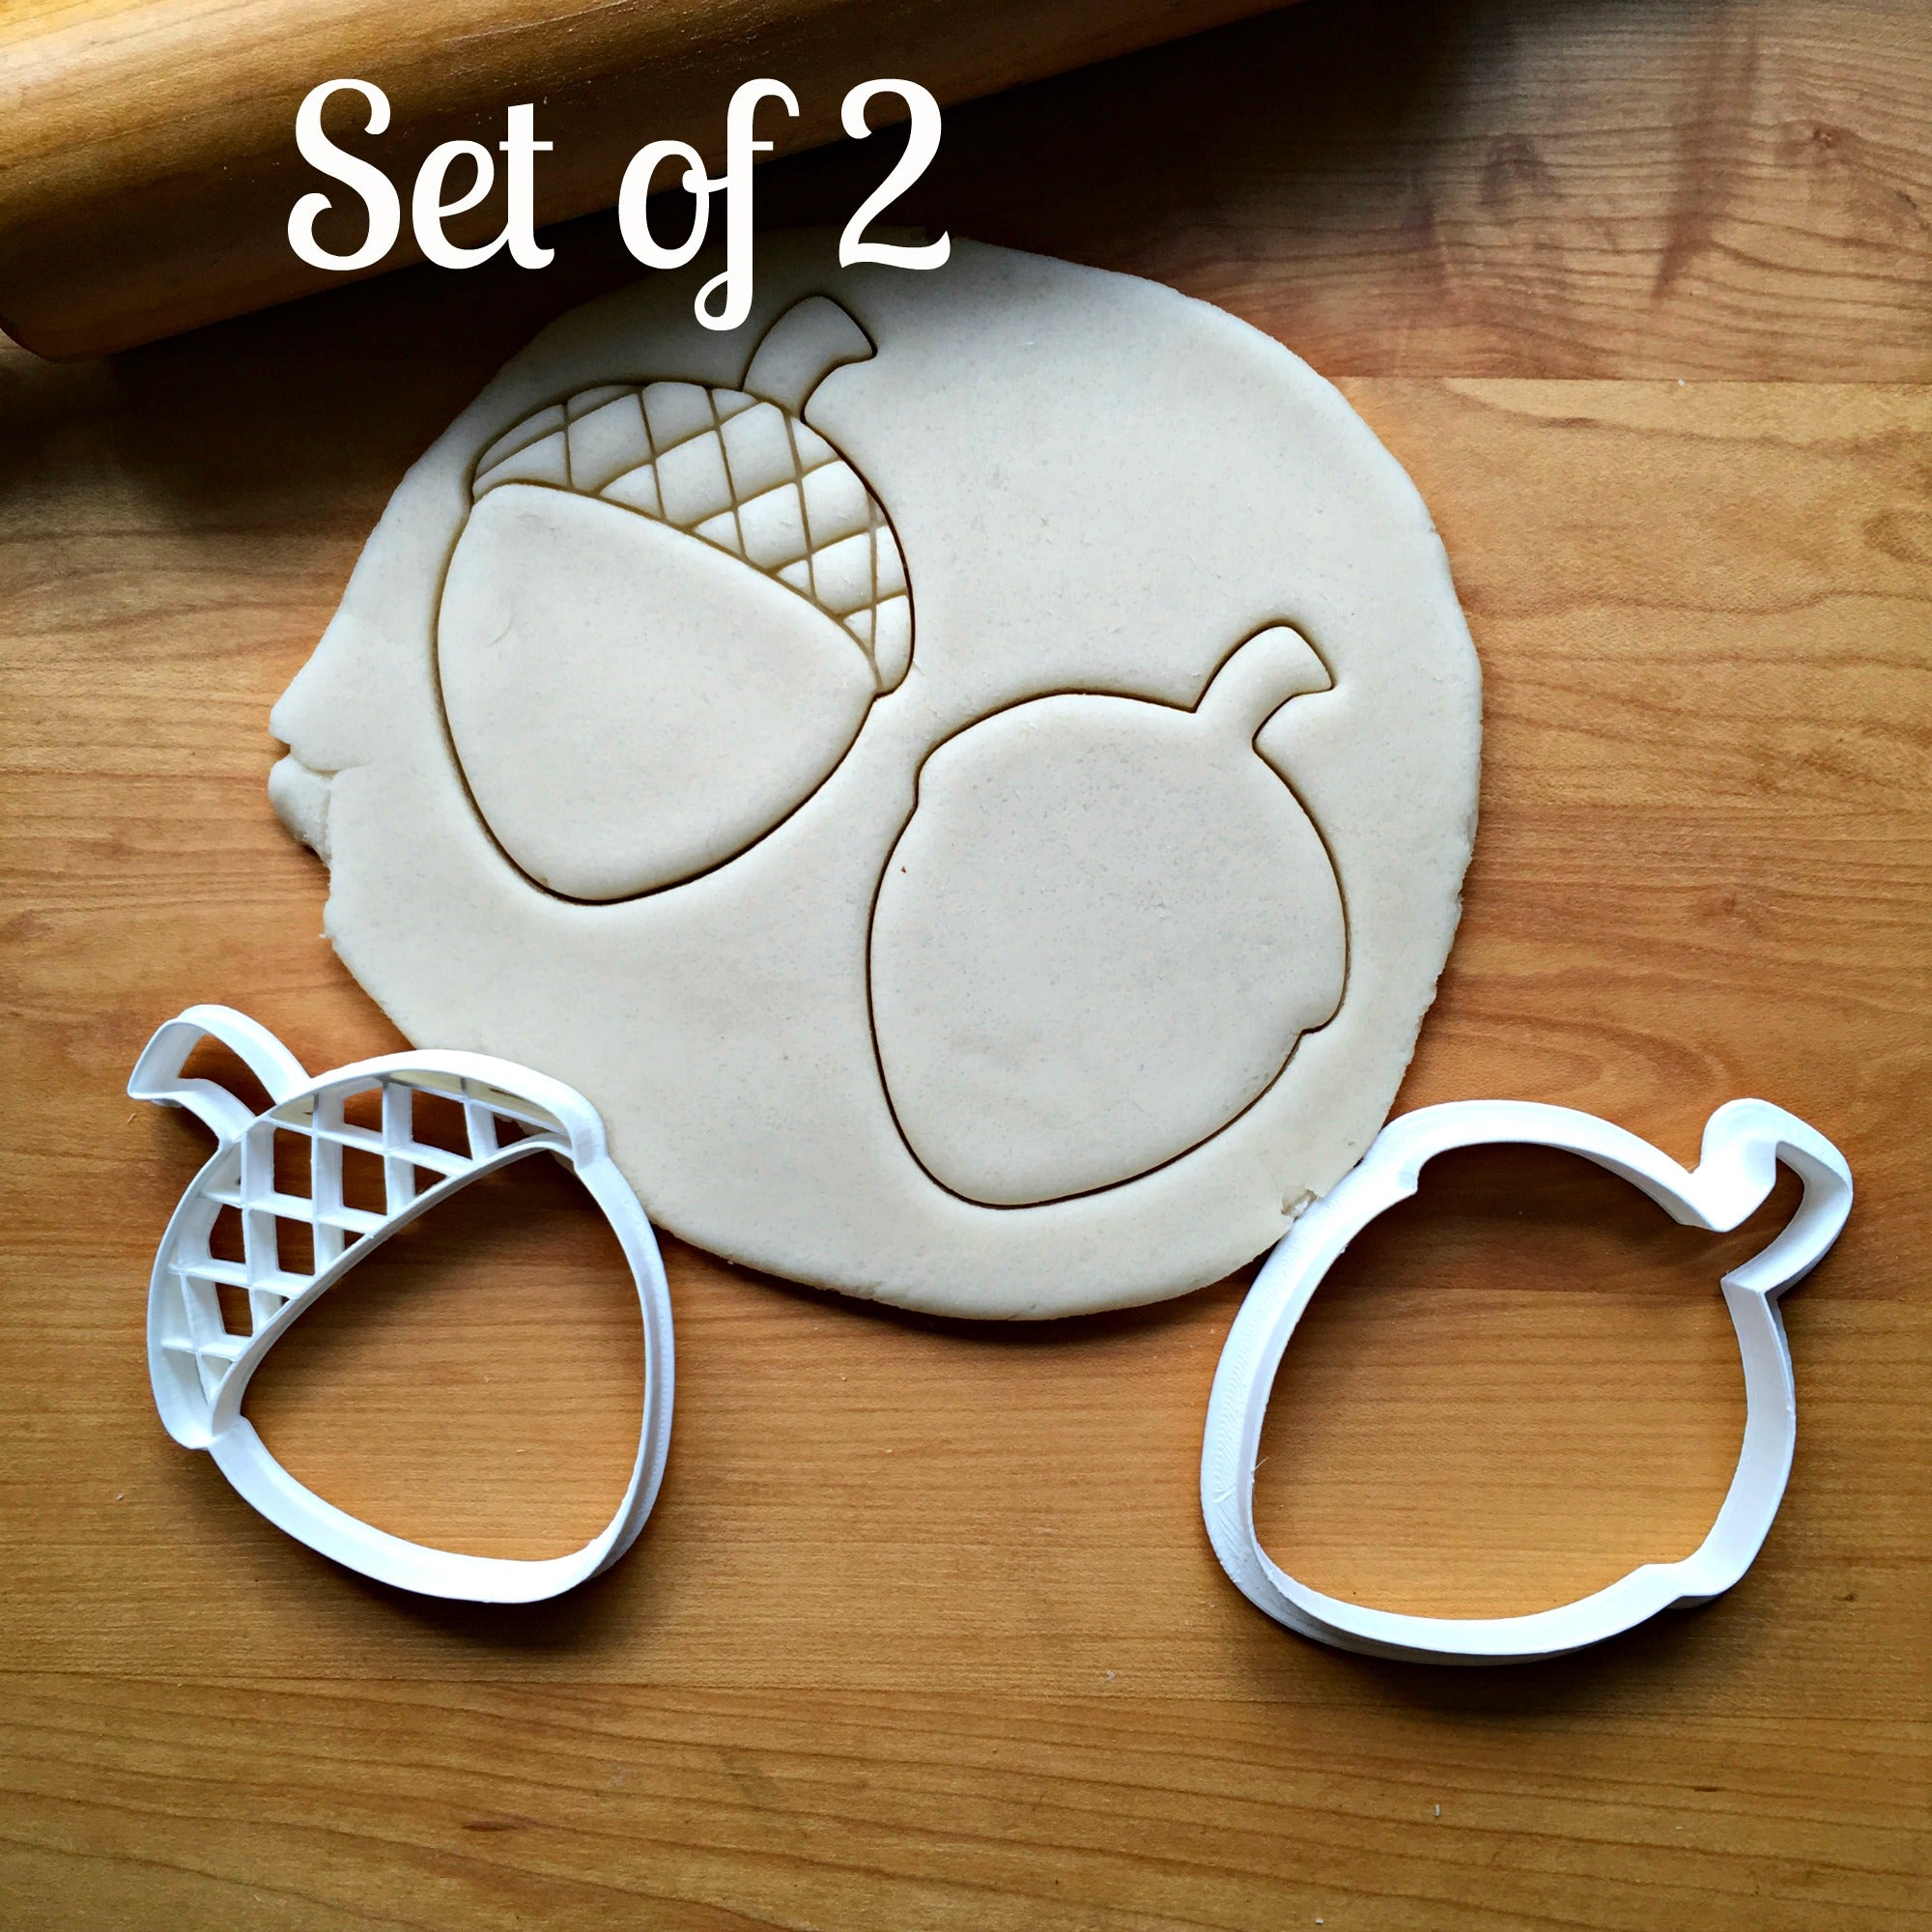 Set of 2 Acorn Cookie  Cutters/Dishwasher Safe